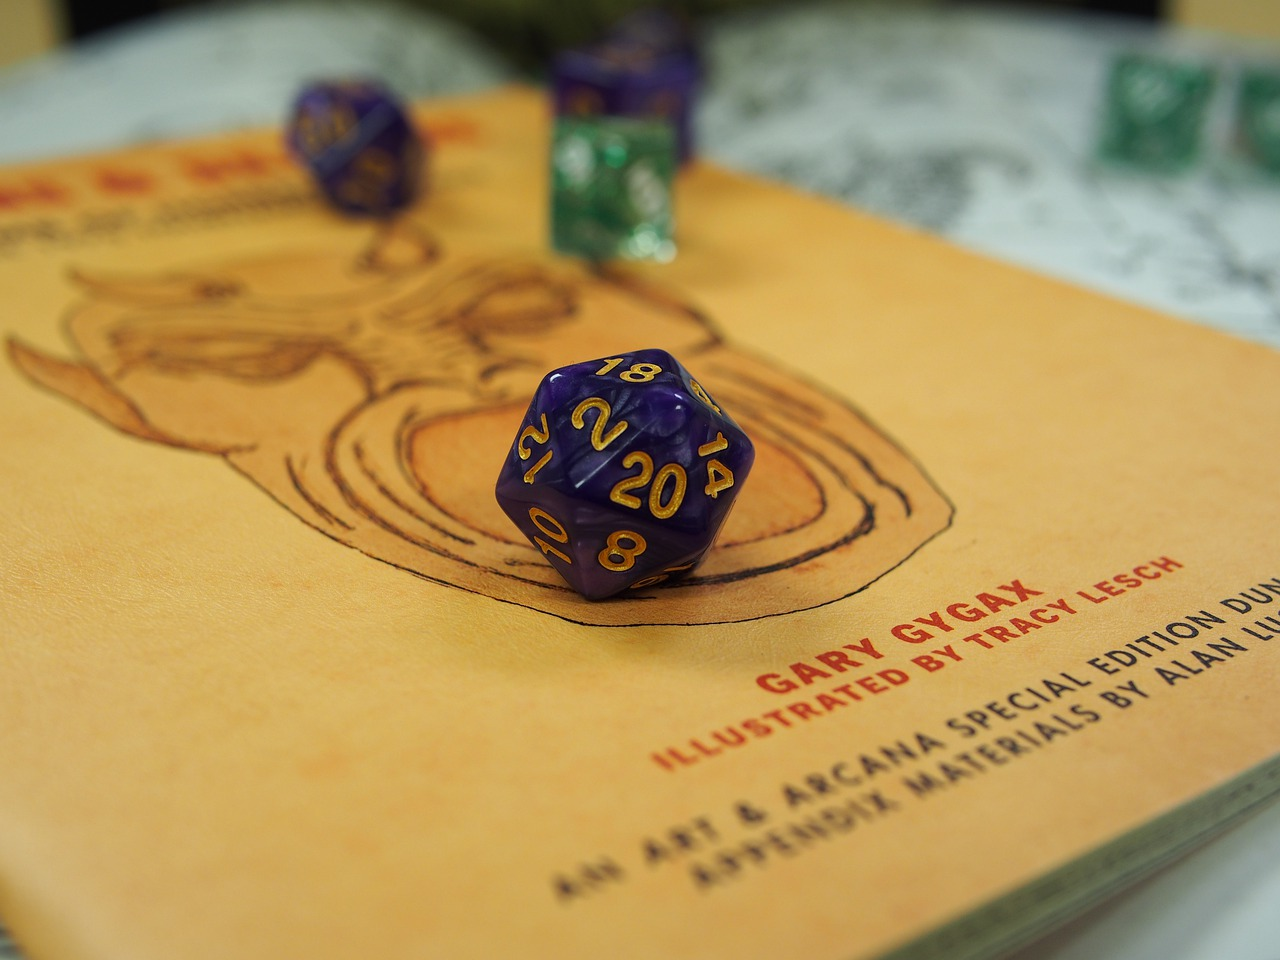 dungeons-and-dragons-4413061_1280.jpg